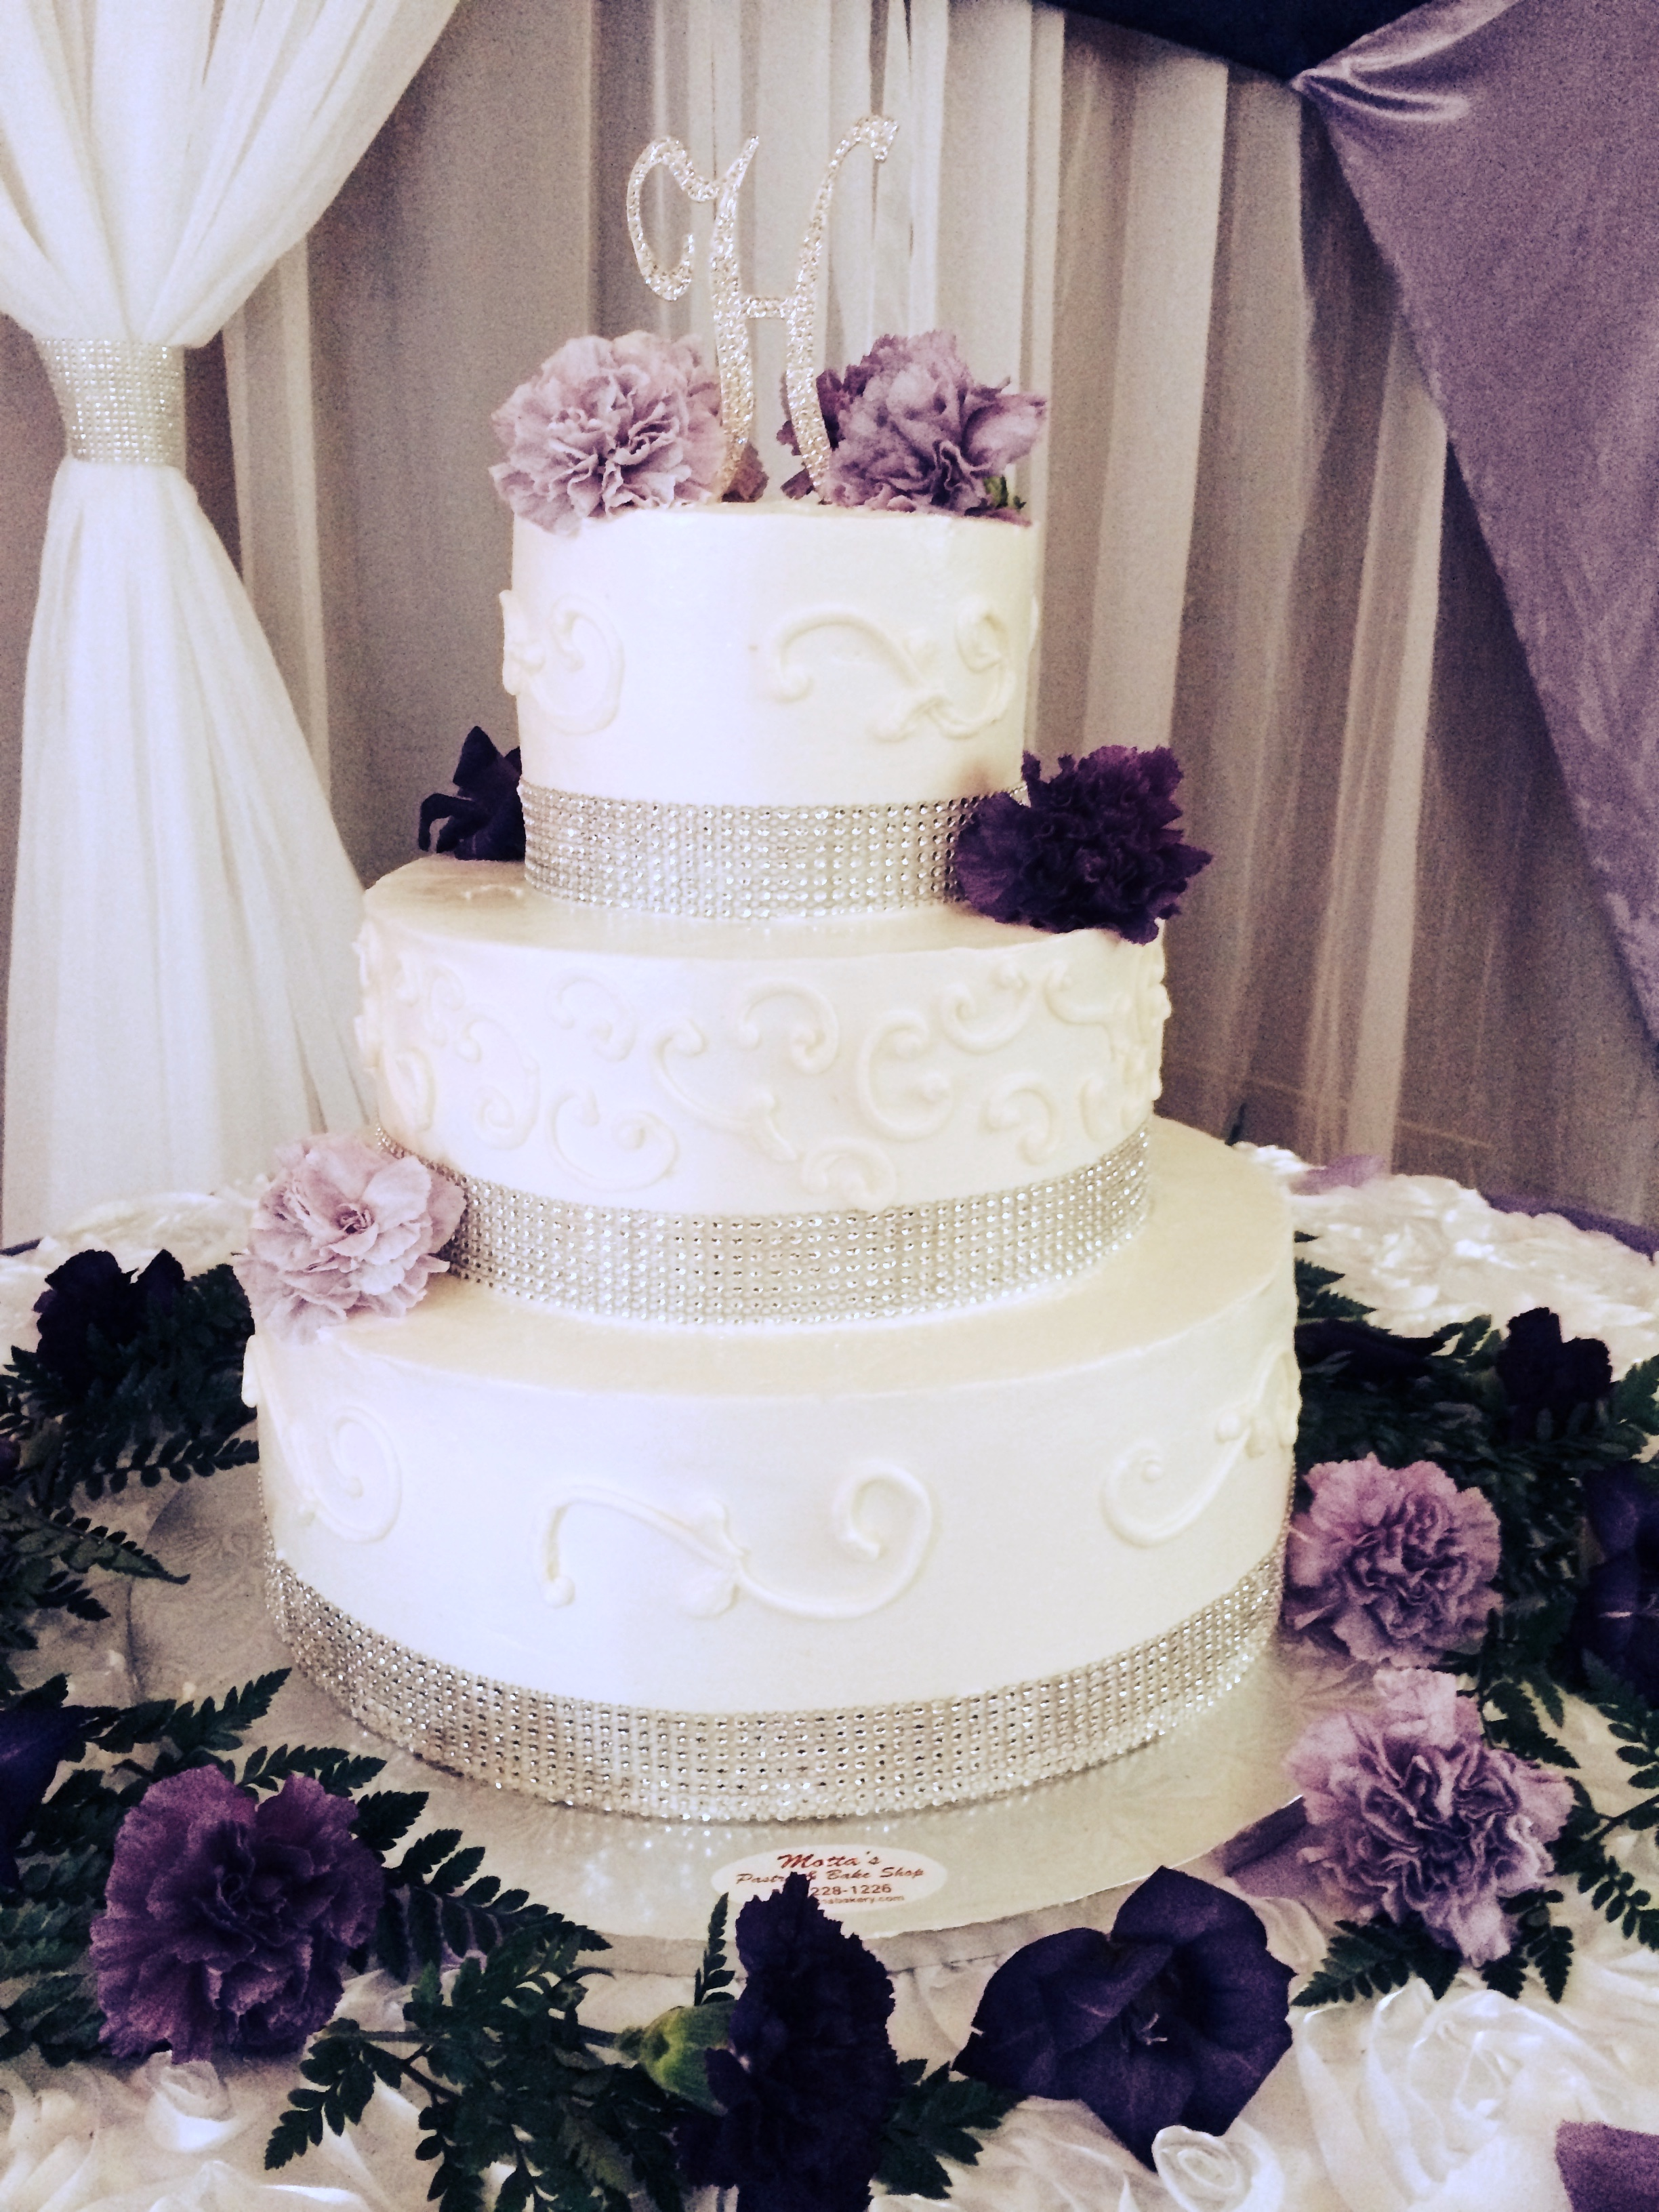 White Wedding Cake Purple Flowers.jpg